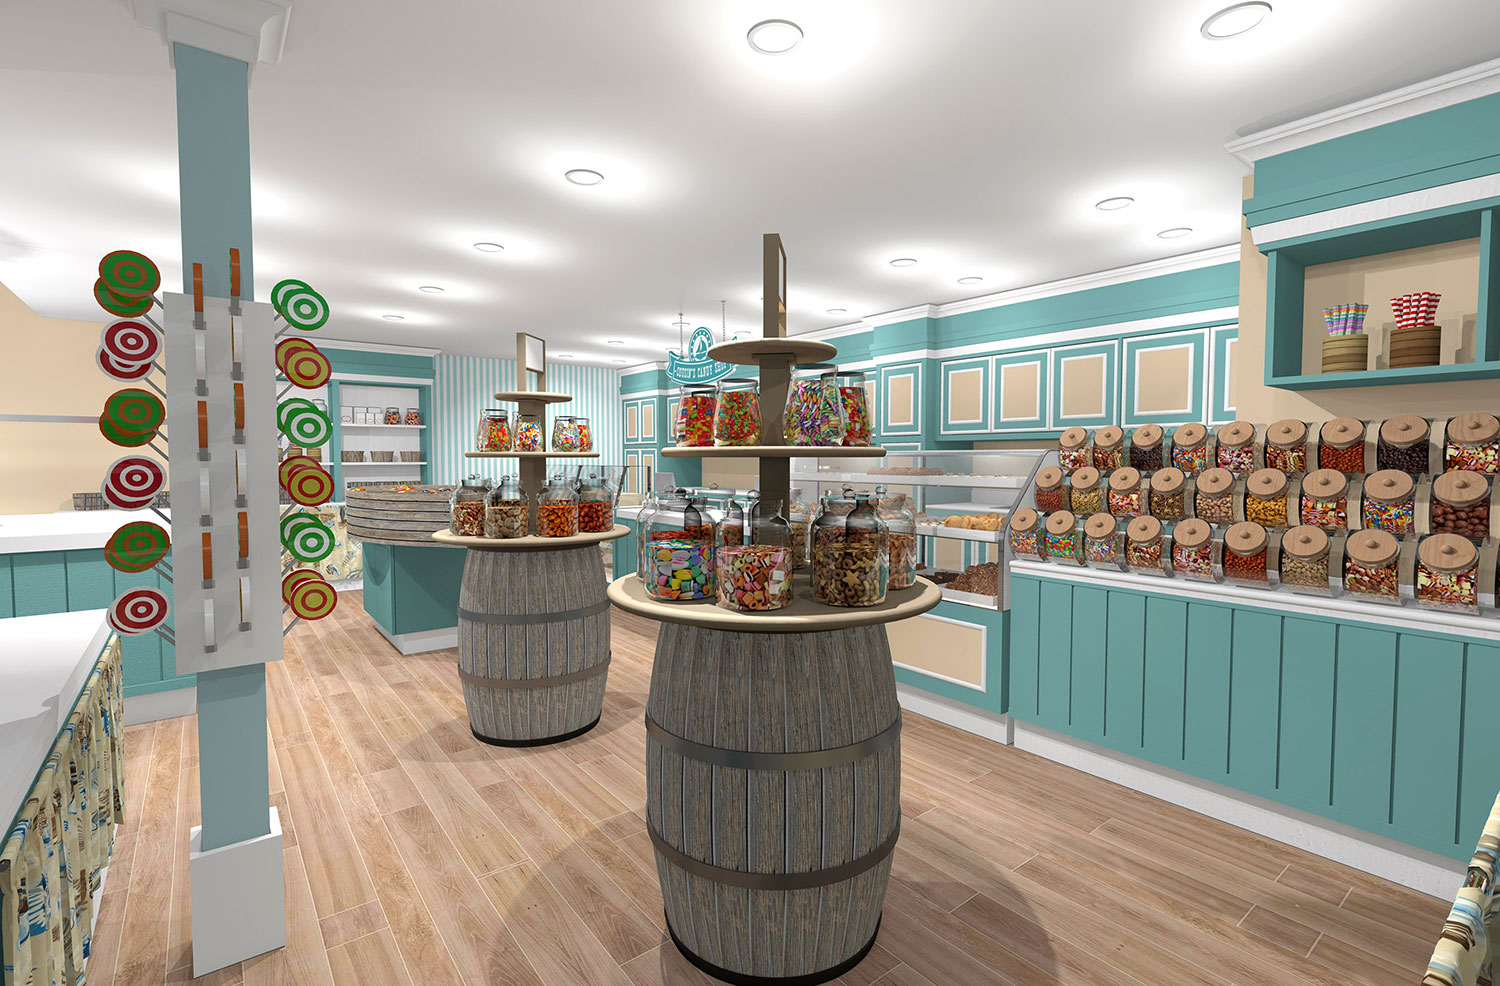 Bakery Shop Design Archives - Mindful Design Consulting